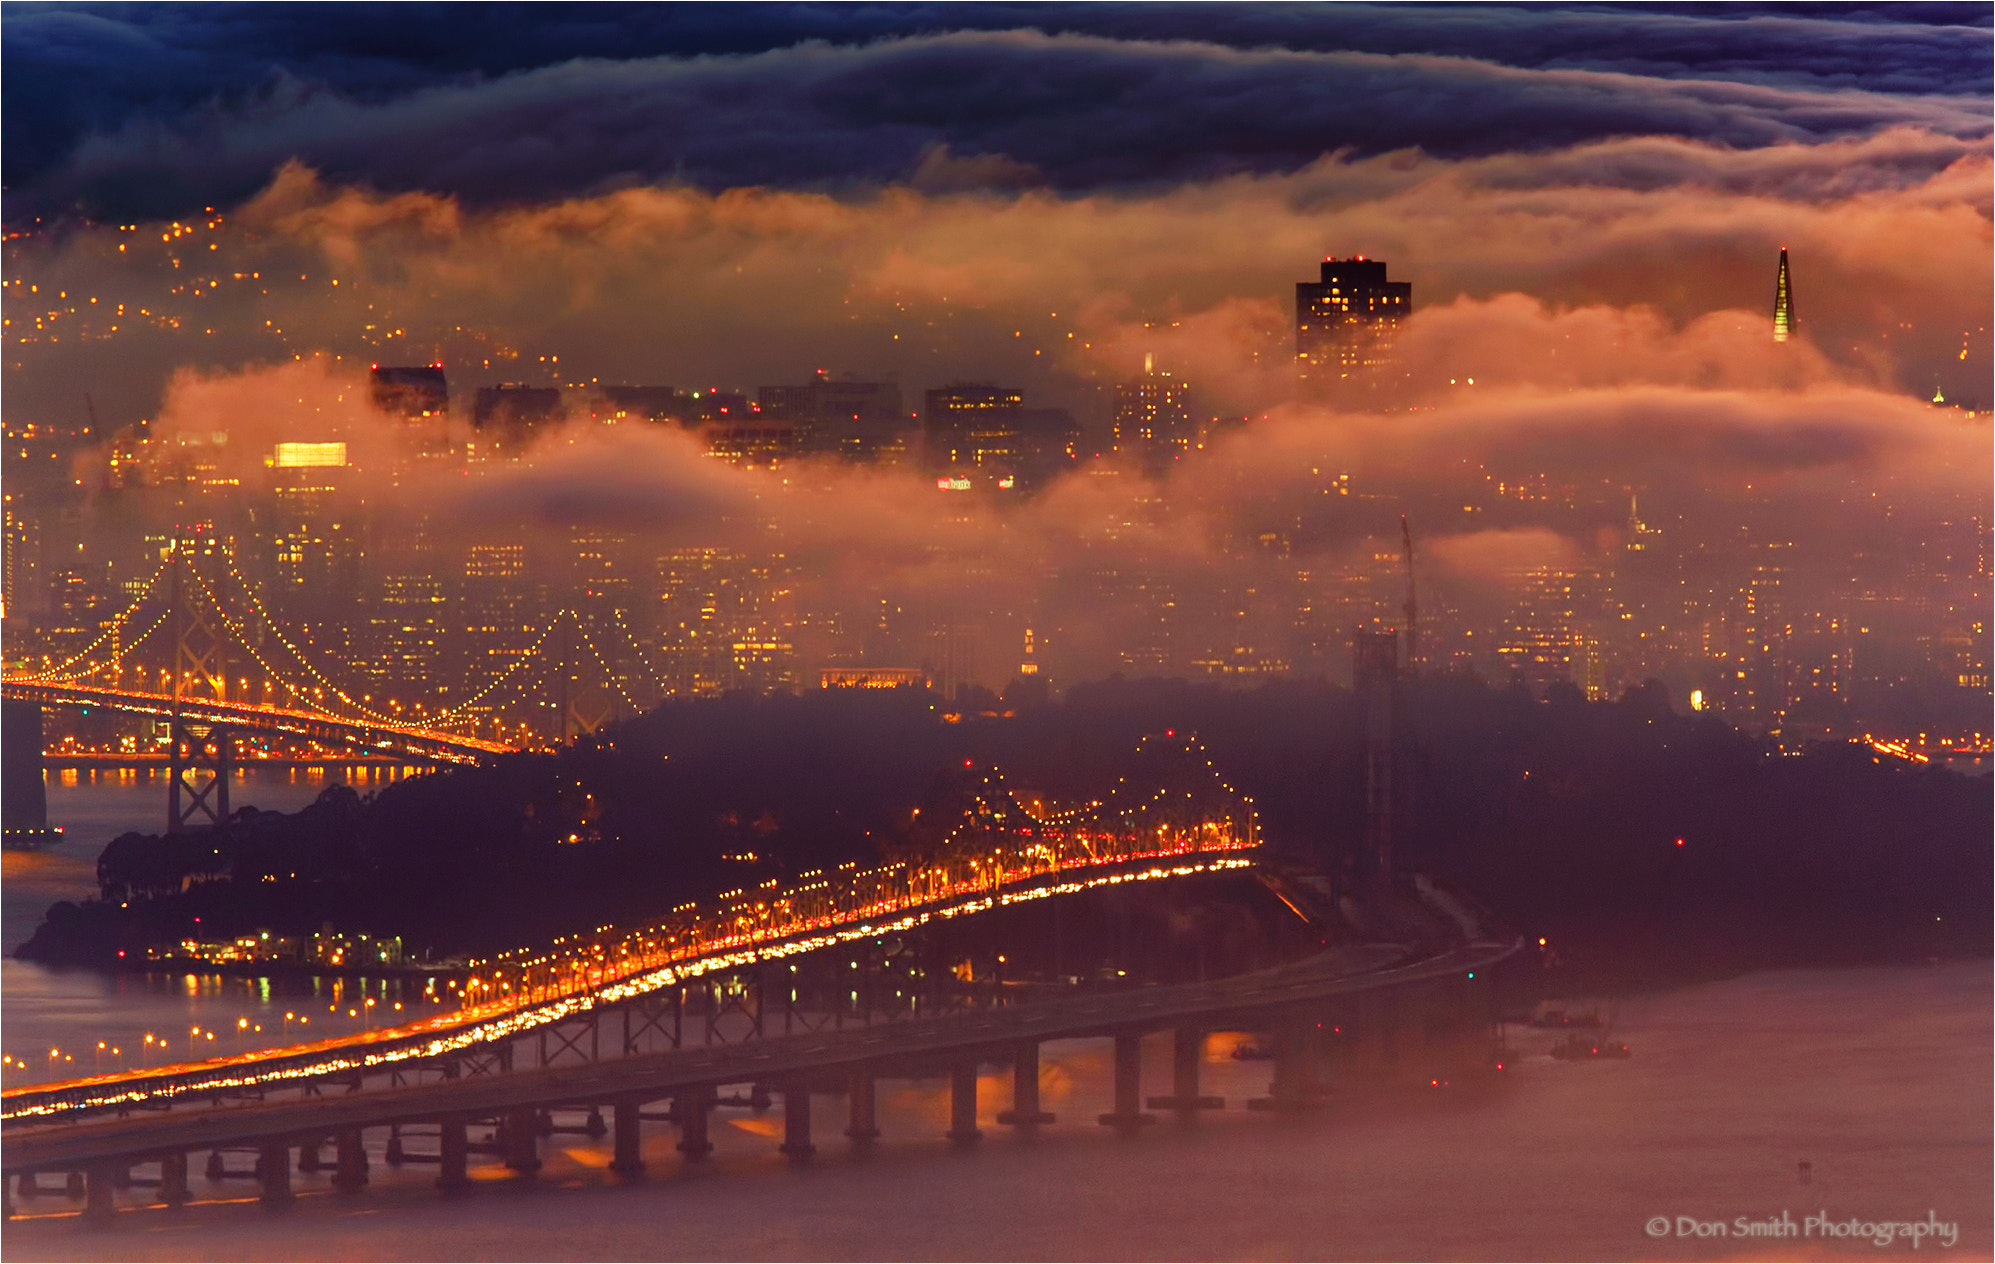 Photograph Through the Mist, San Francisco by Don Smith on 500px